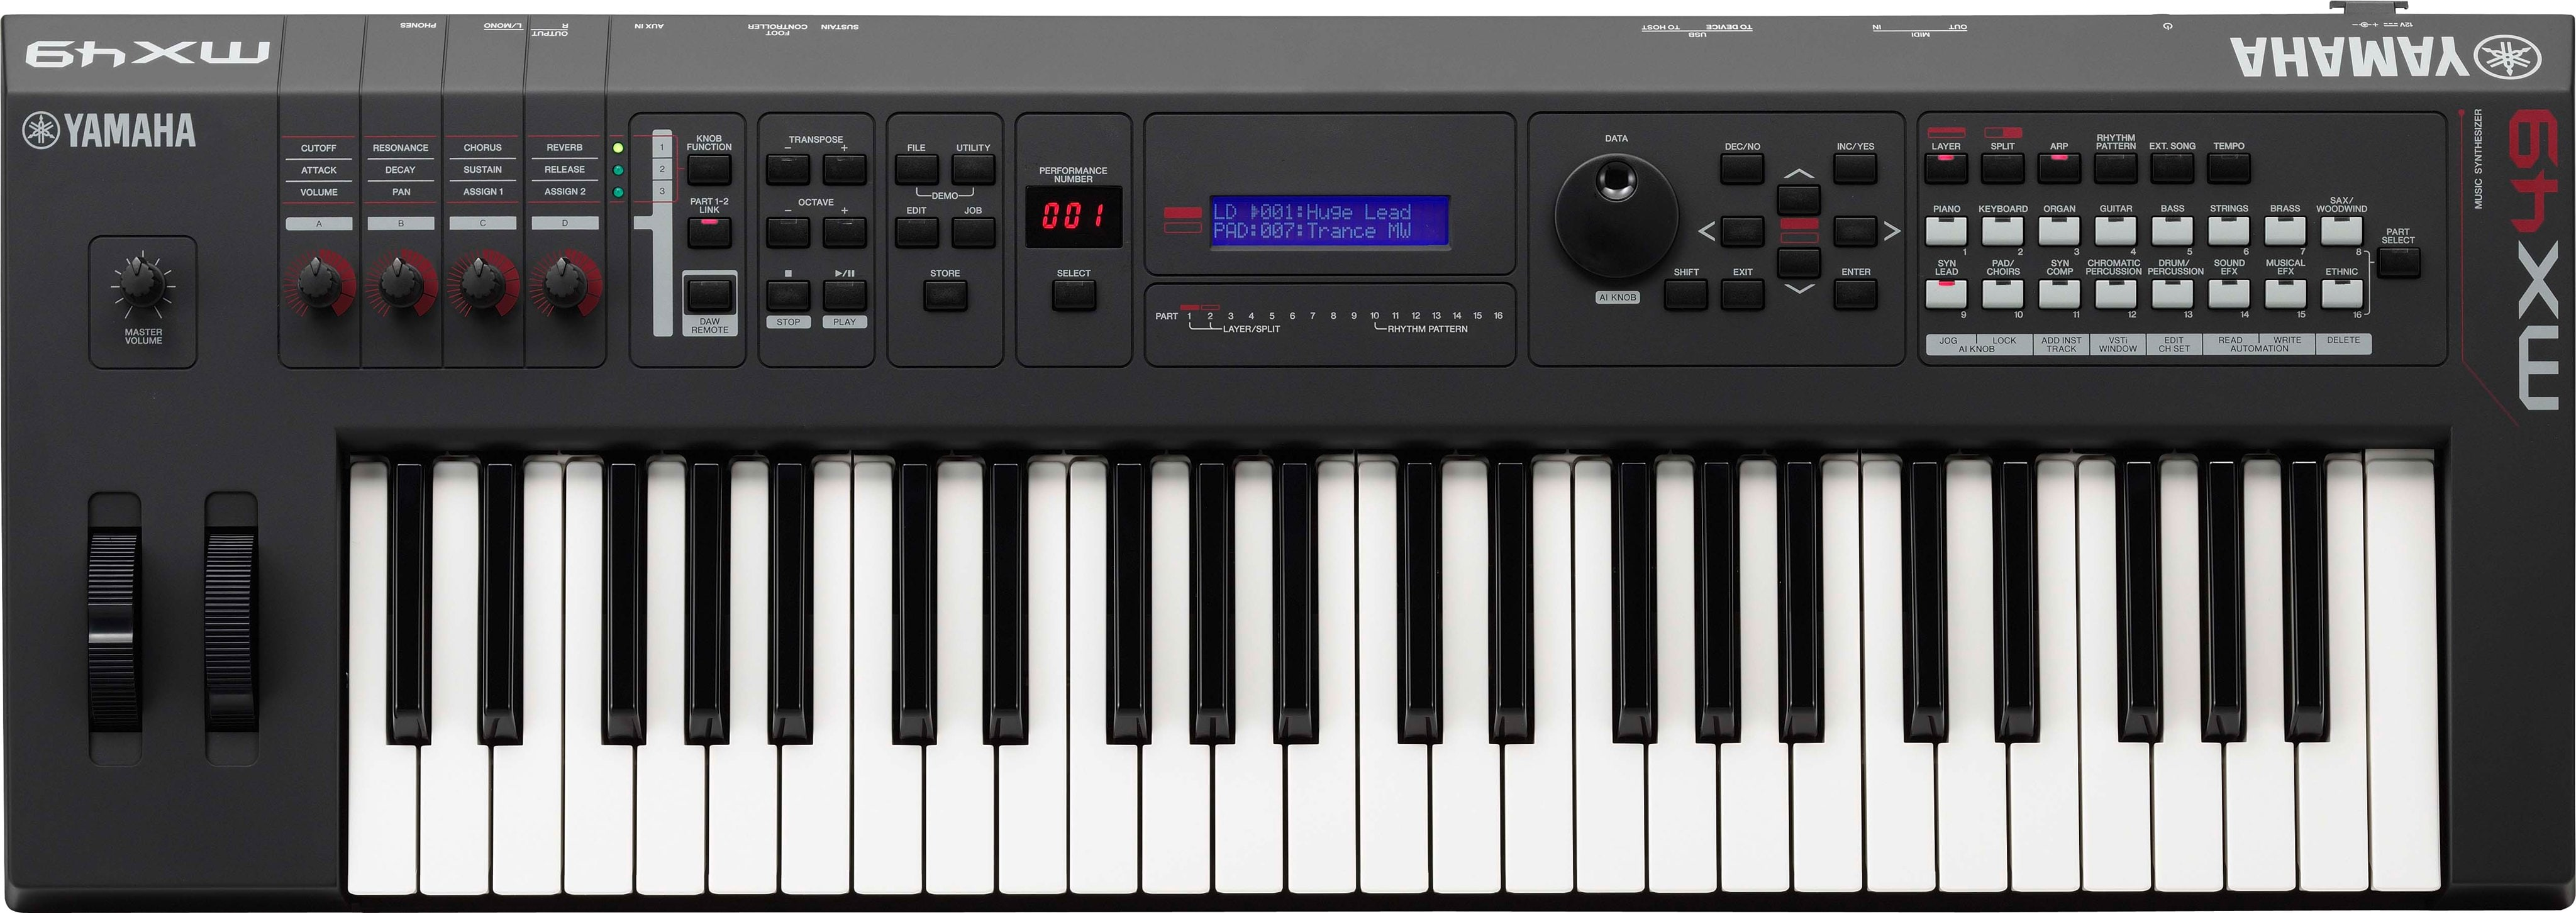 MX Series - Overview - Synthesizers - Synthesizers & Music